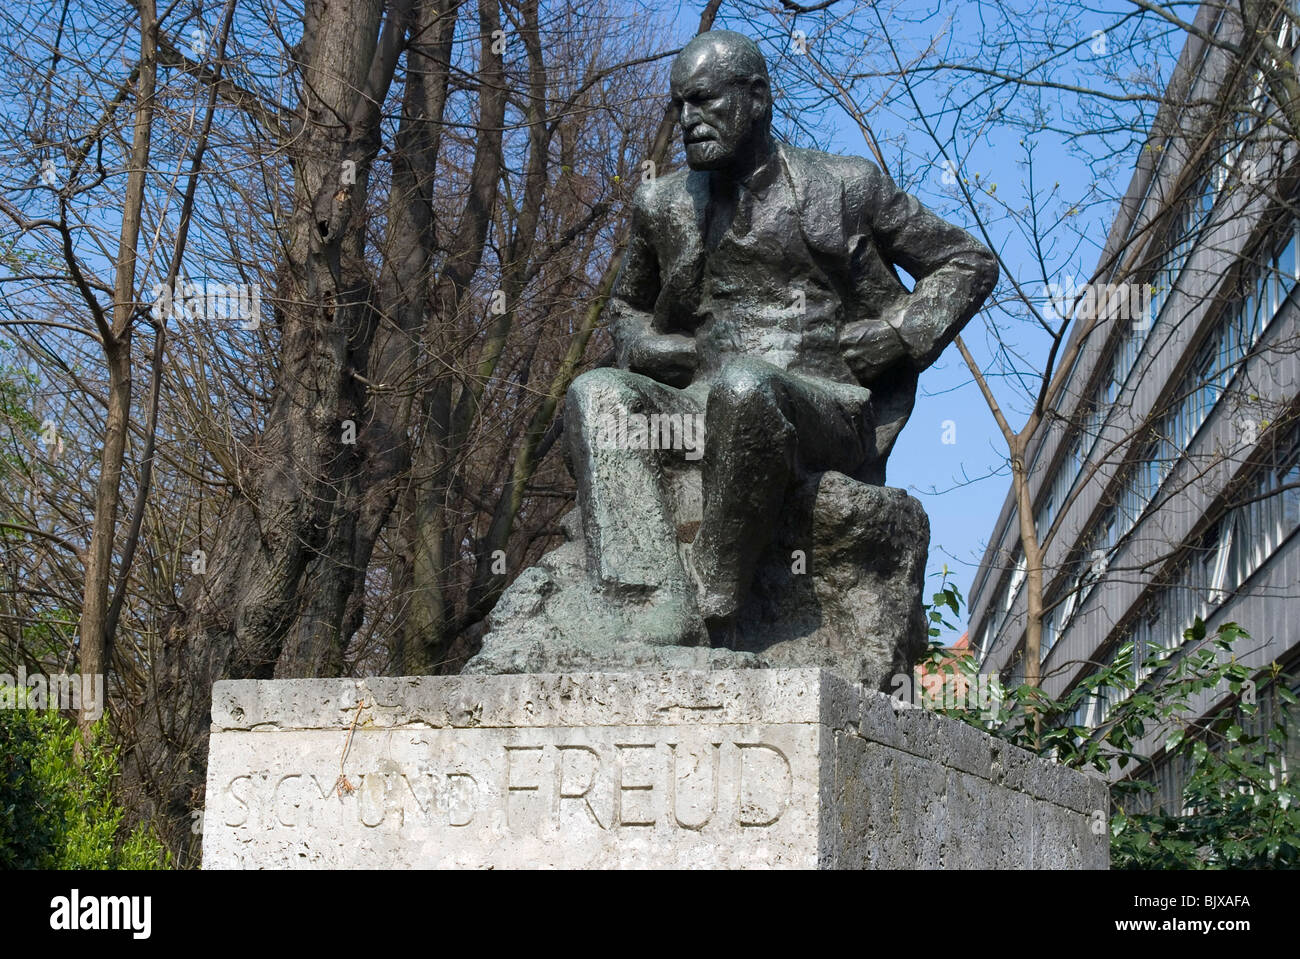 Statue of Freud in front of the Tavistock Institute, Belsize Park, London, England. - Stock Image